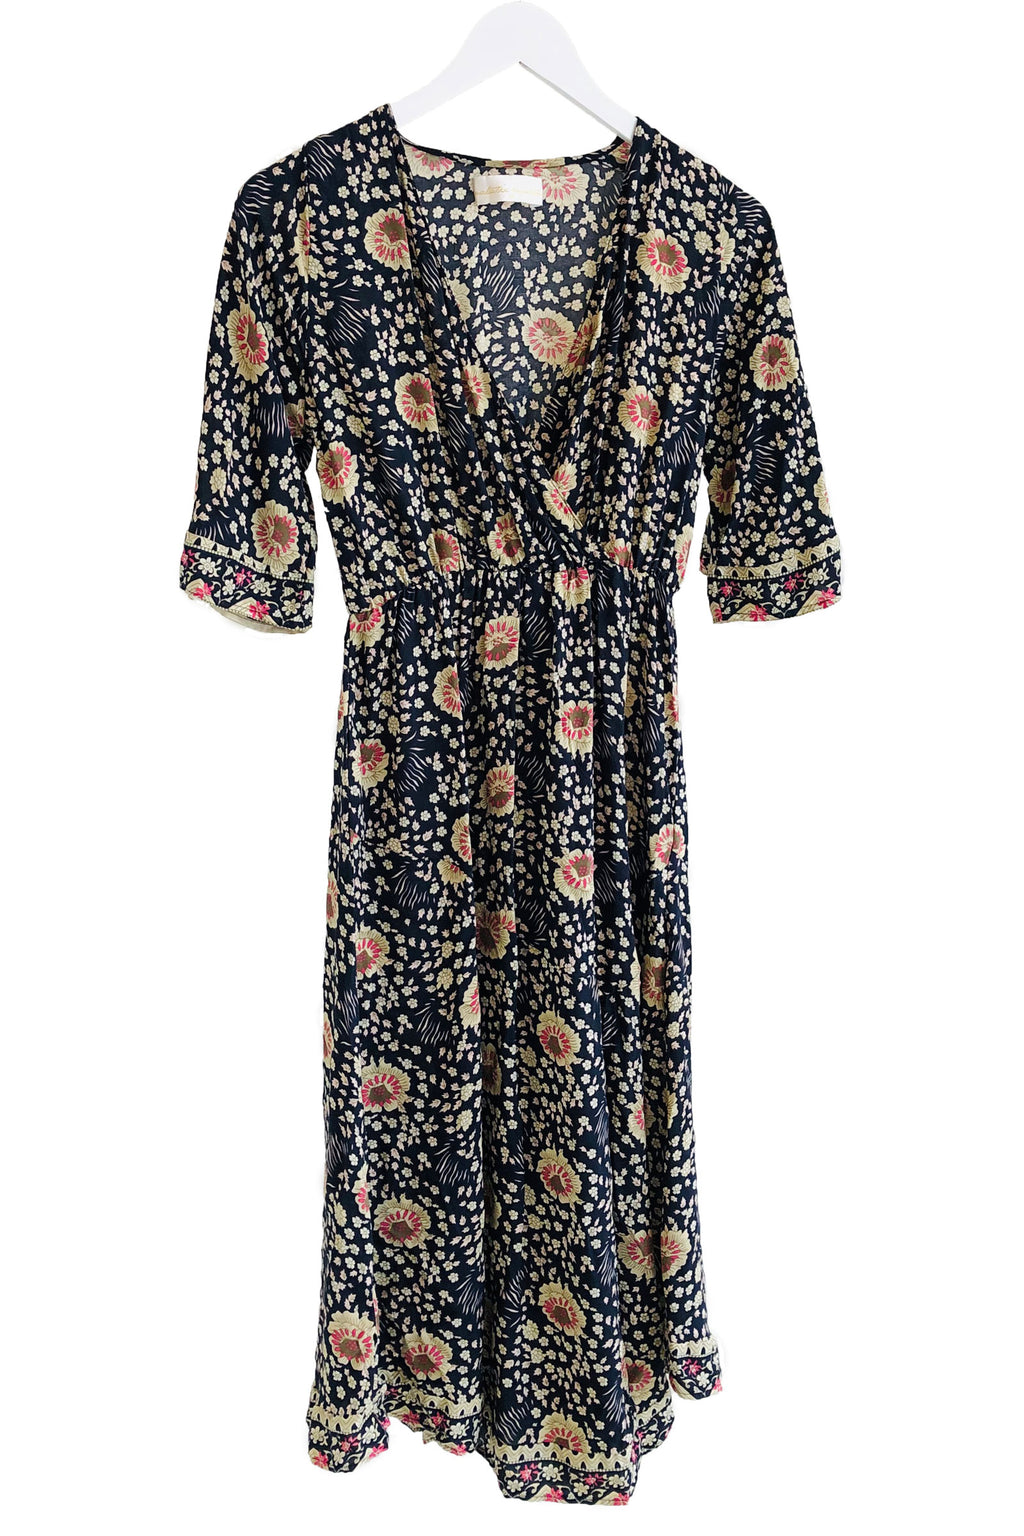 Natalie Martin Coco Dress in Vintage Flowers Midnight